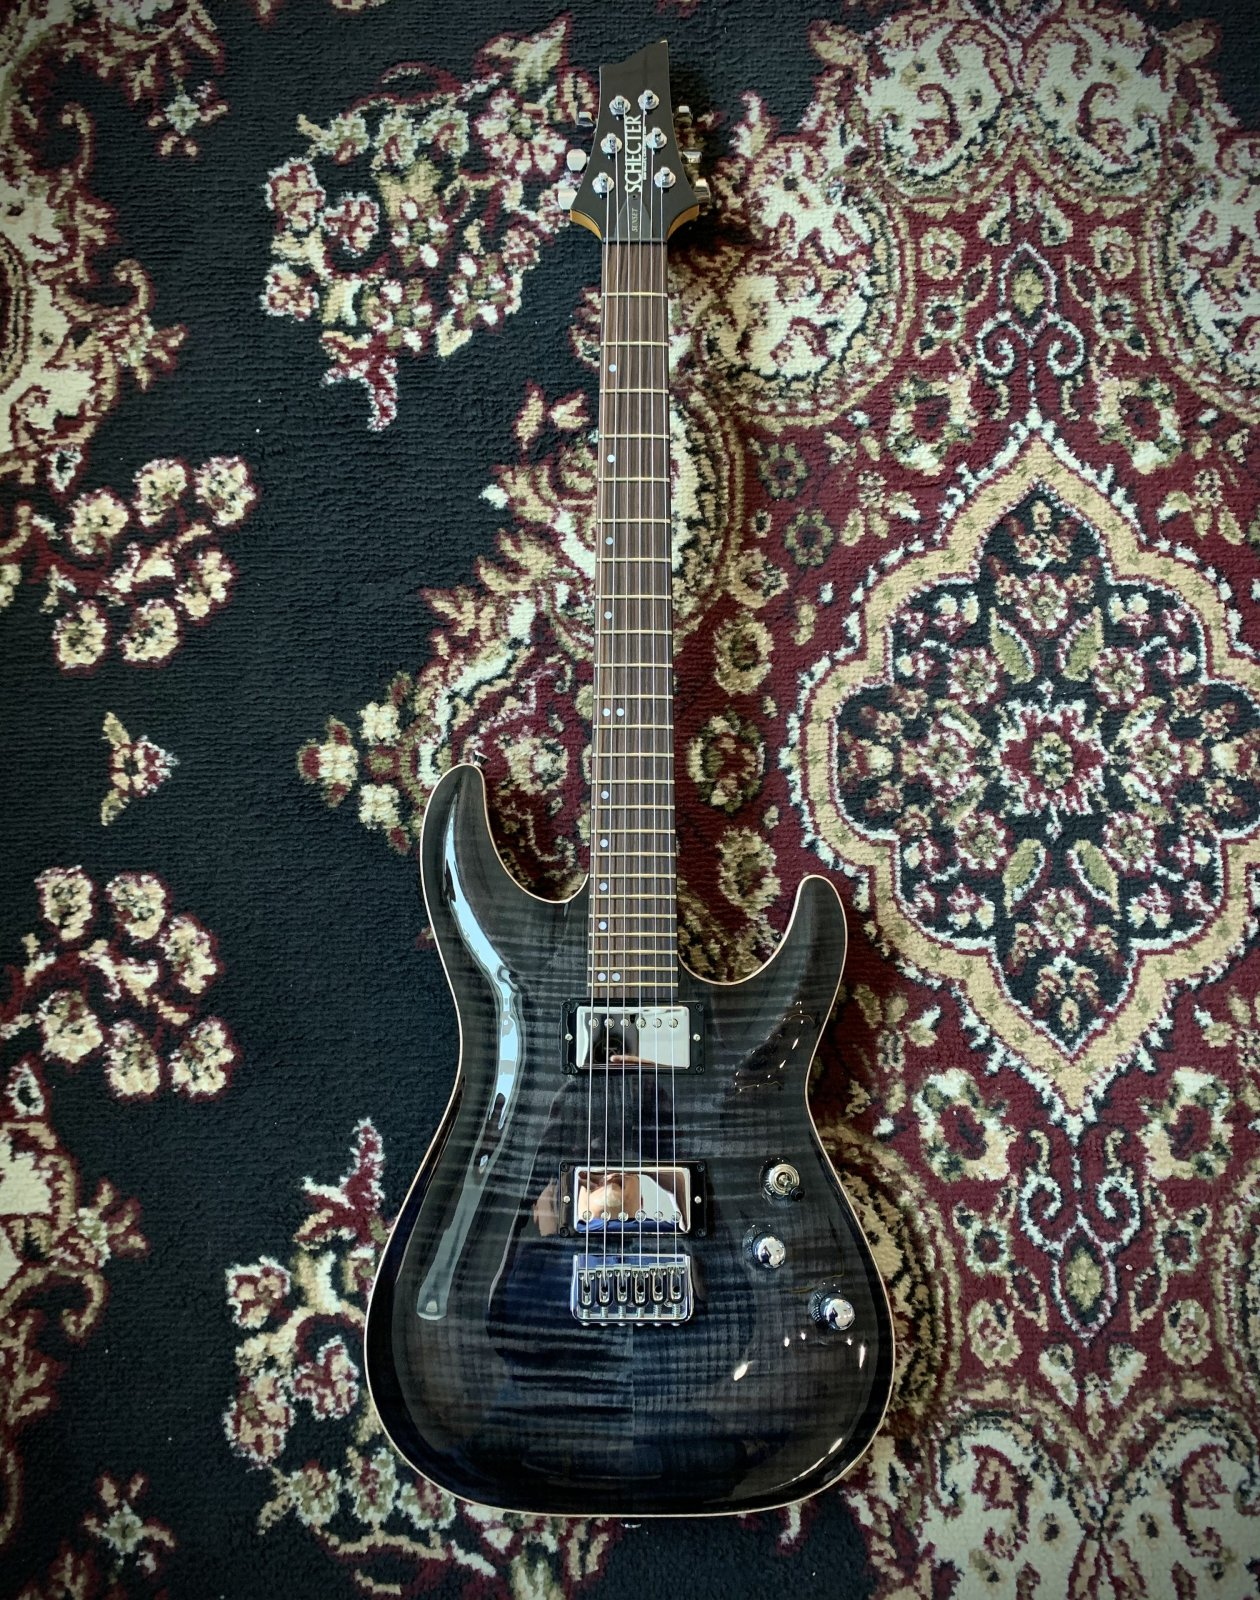 Schecter USA Custom Shop Sunset Classic II - Trans Black